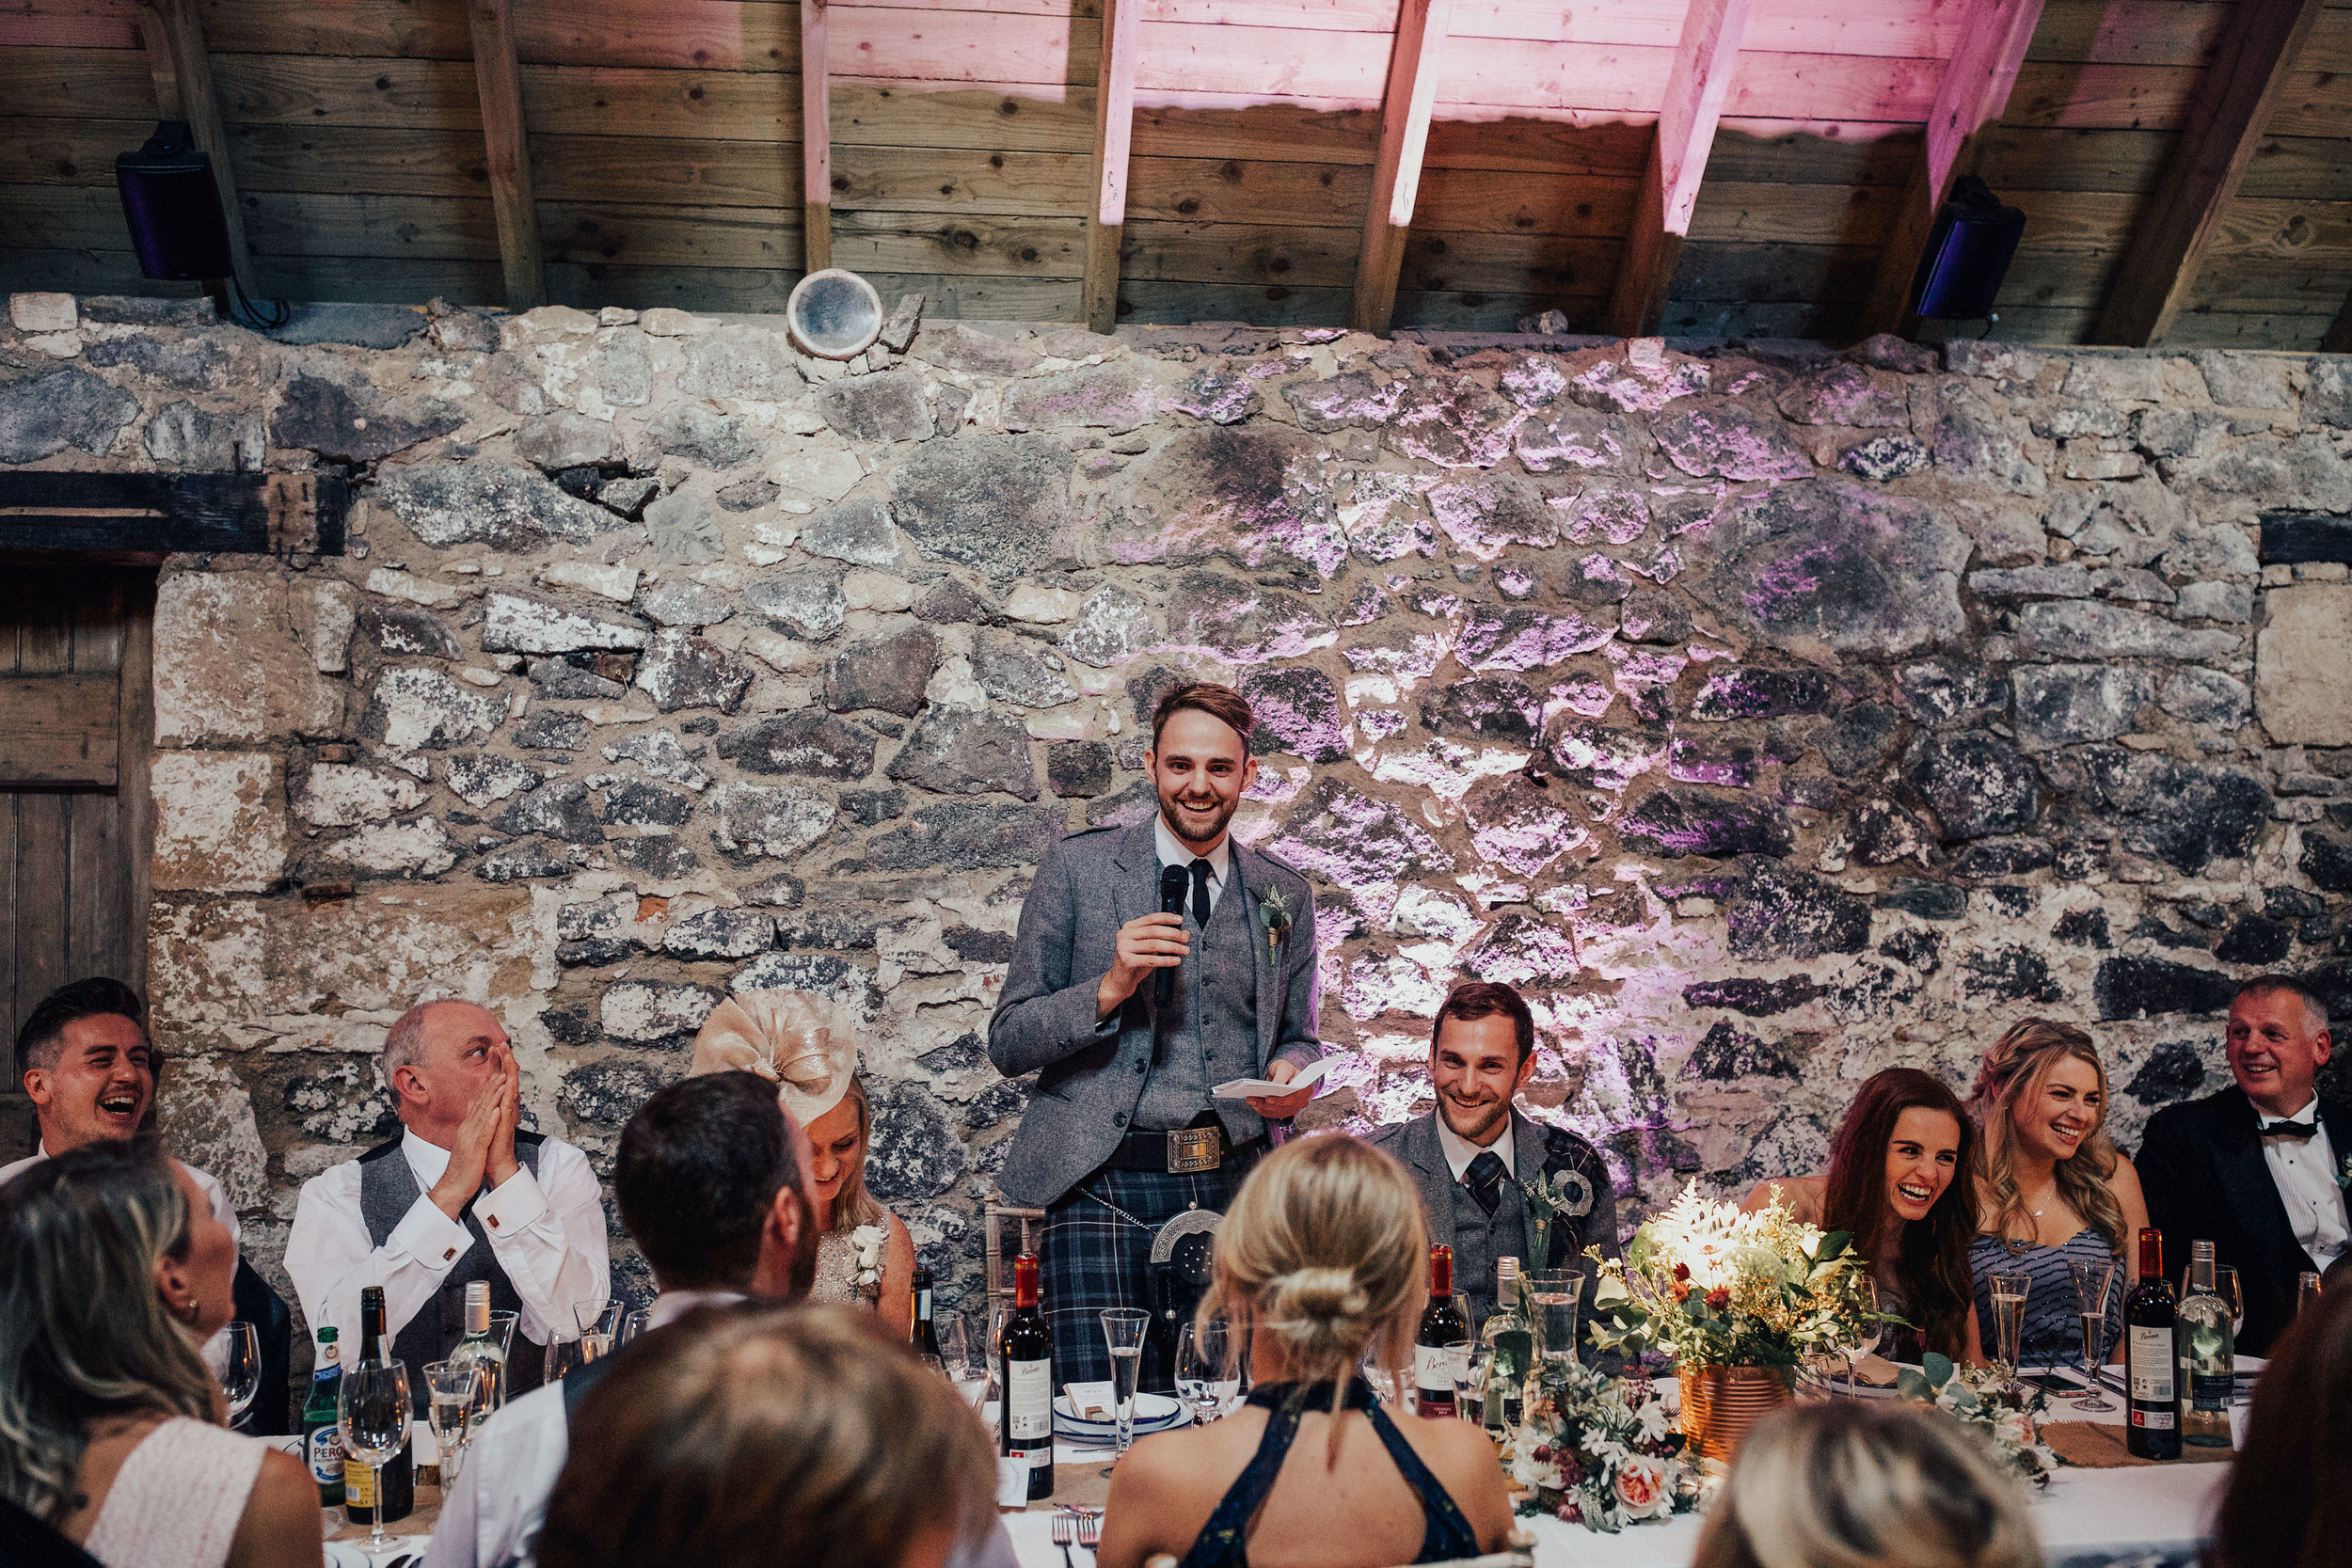 BYRE_AT_INCHYRA_WEDDING_PHOTOGRAPHER_PJ_PHILLIPS_PHOTOGRAPHY_KAYLEIGH_ANDREW_144.jpg